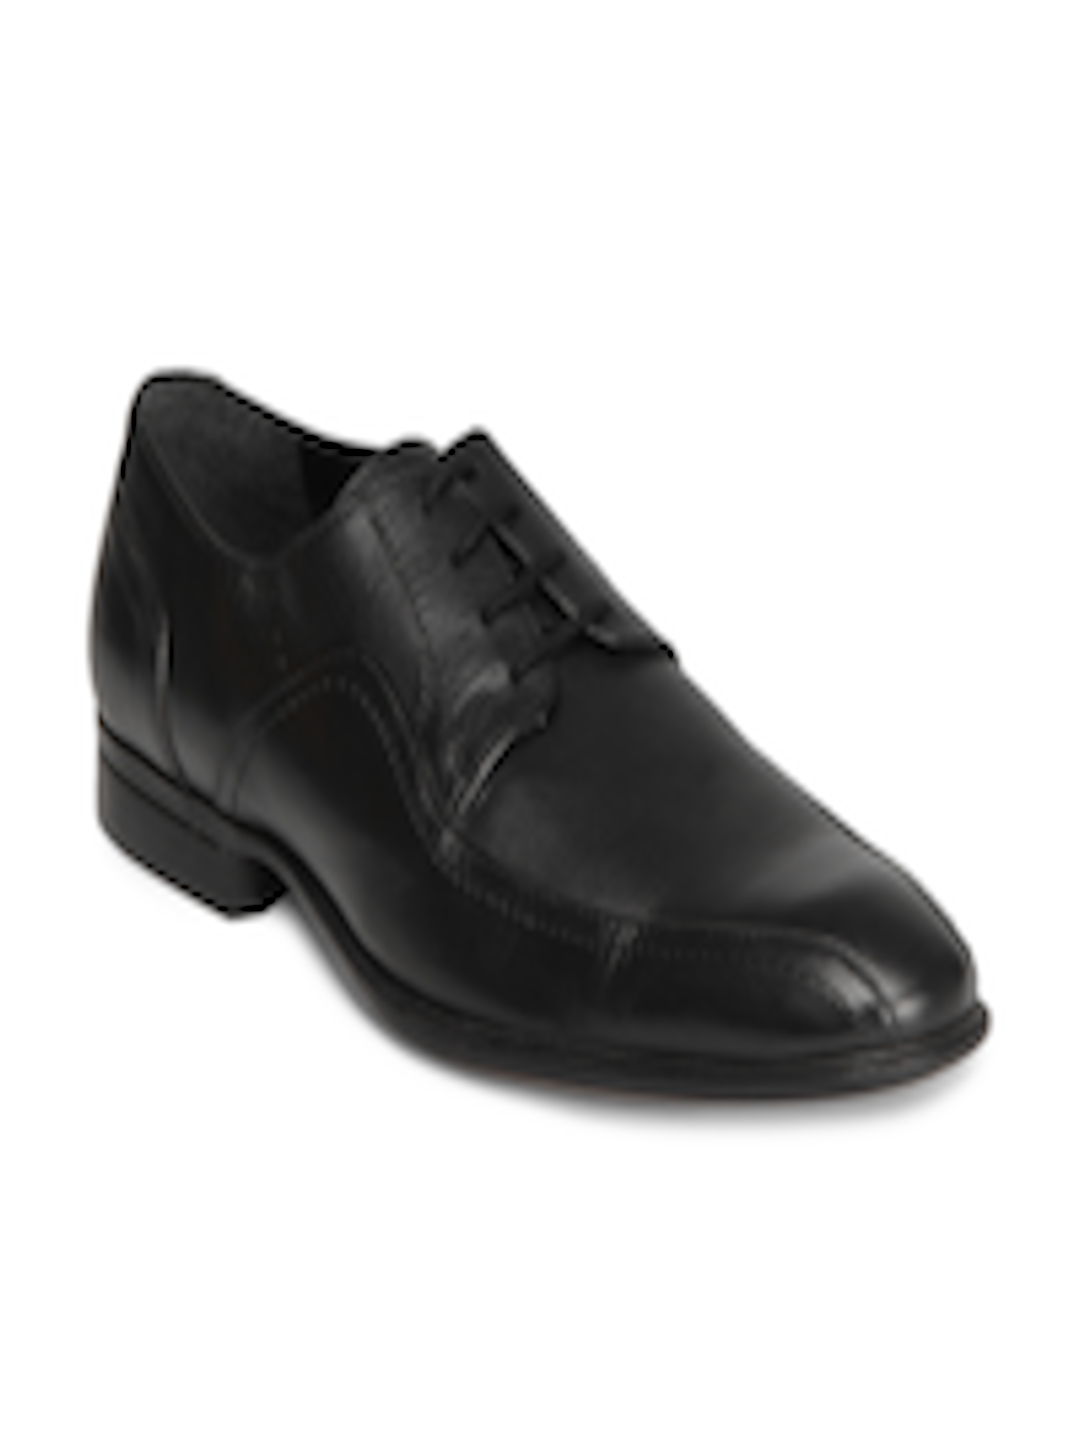 cee19a4fe40 Buy Pavers England Men Black Formal Shoes - - Footwear for Men